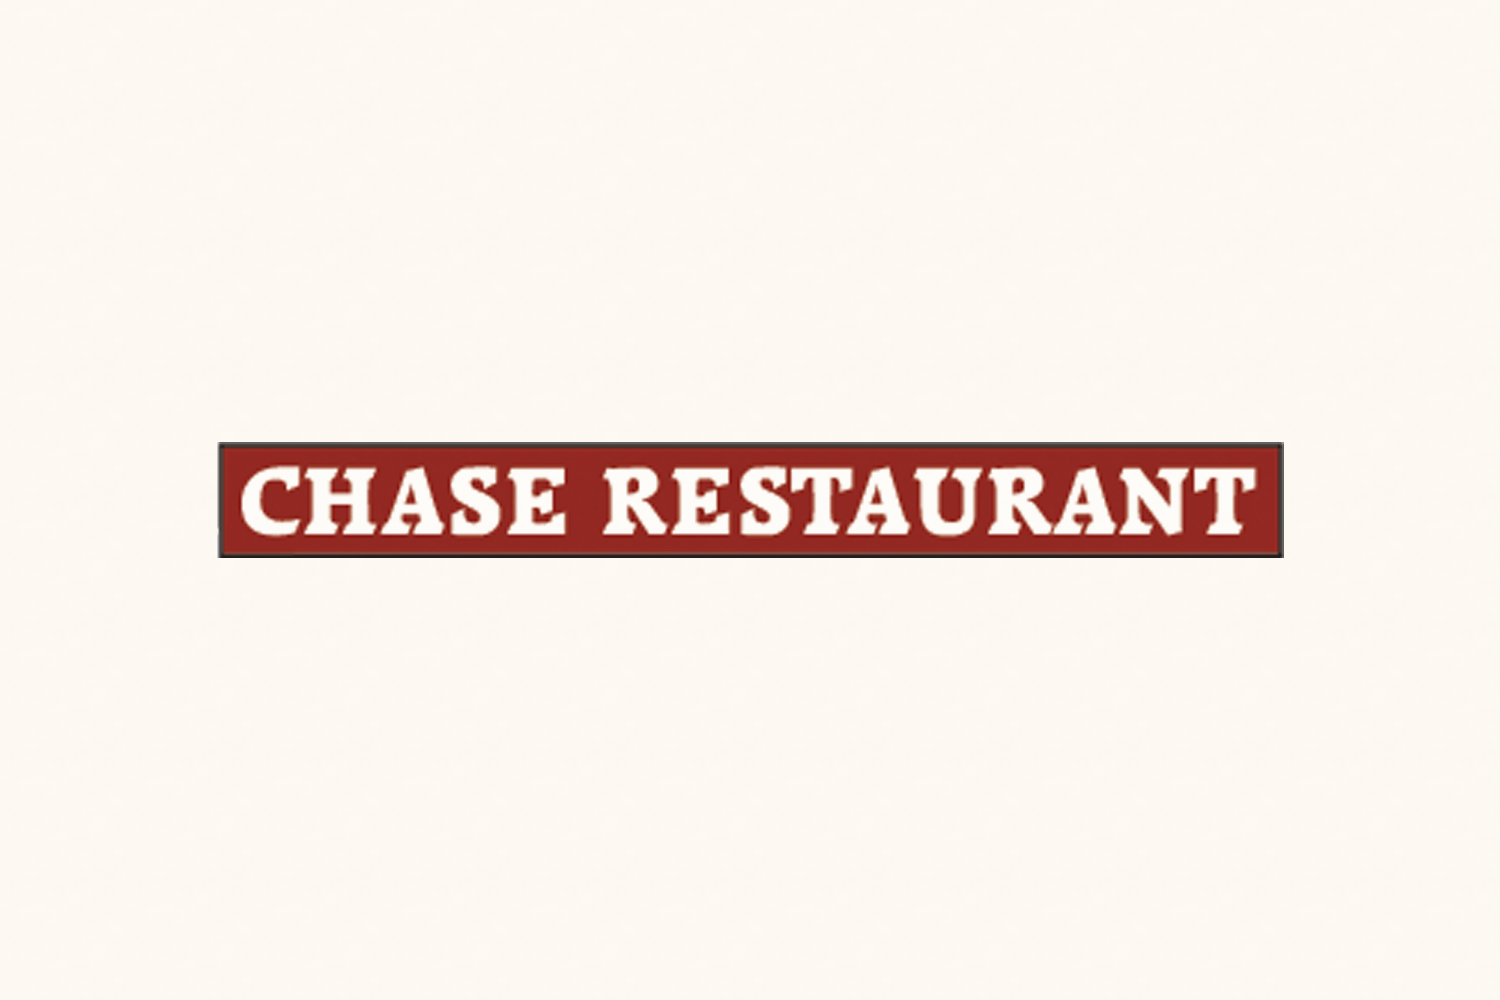 The Chase Restaurant and Lounge